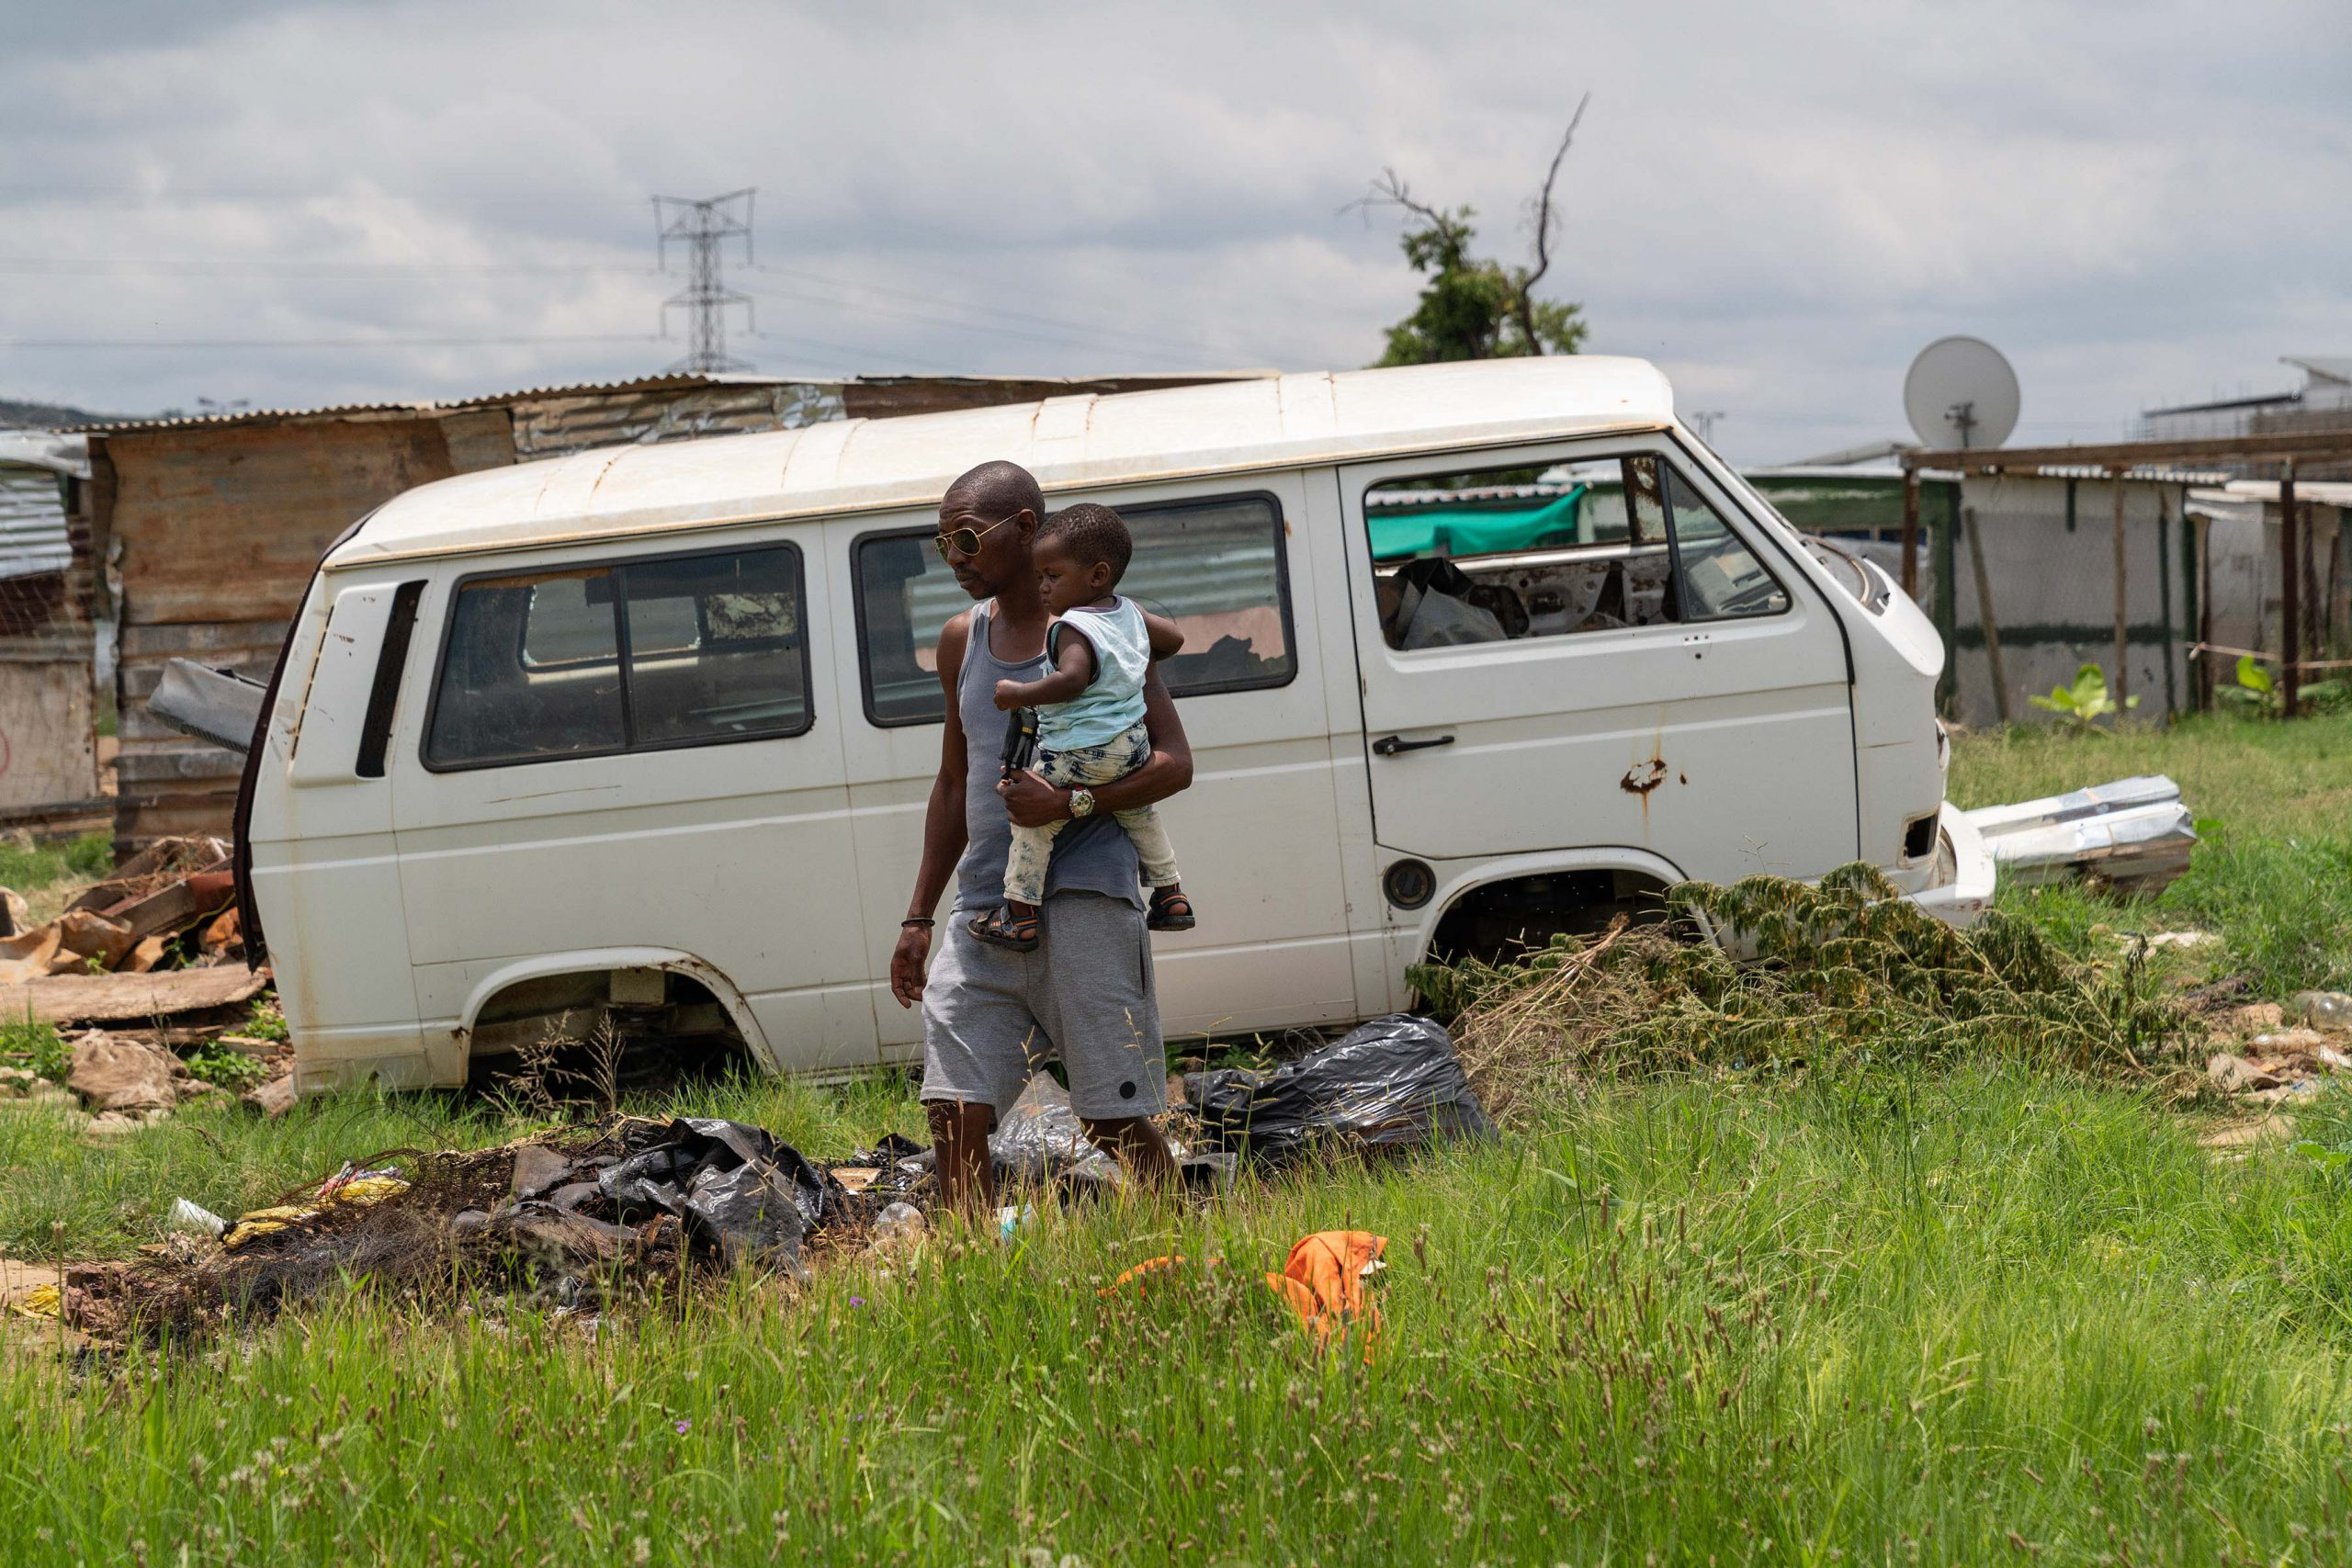 21 January 2020: Mandla Mahlangu, a Seven Seven leader, walks past a wrecked Kombi and other flood damage.